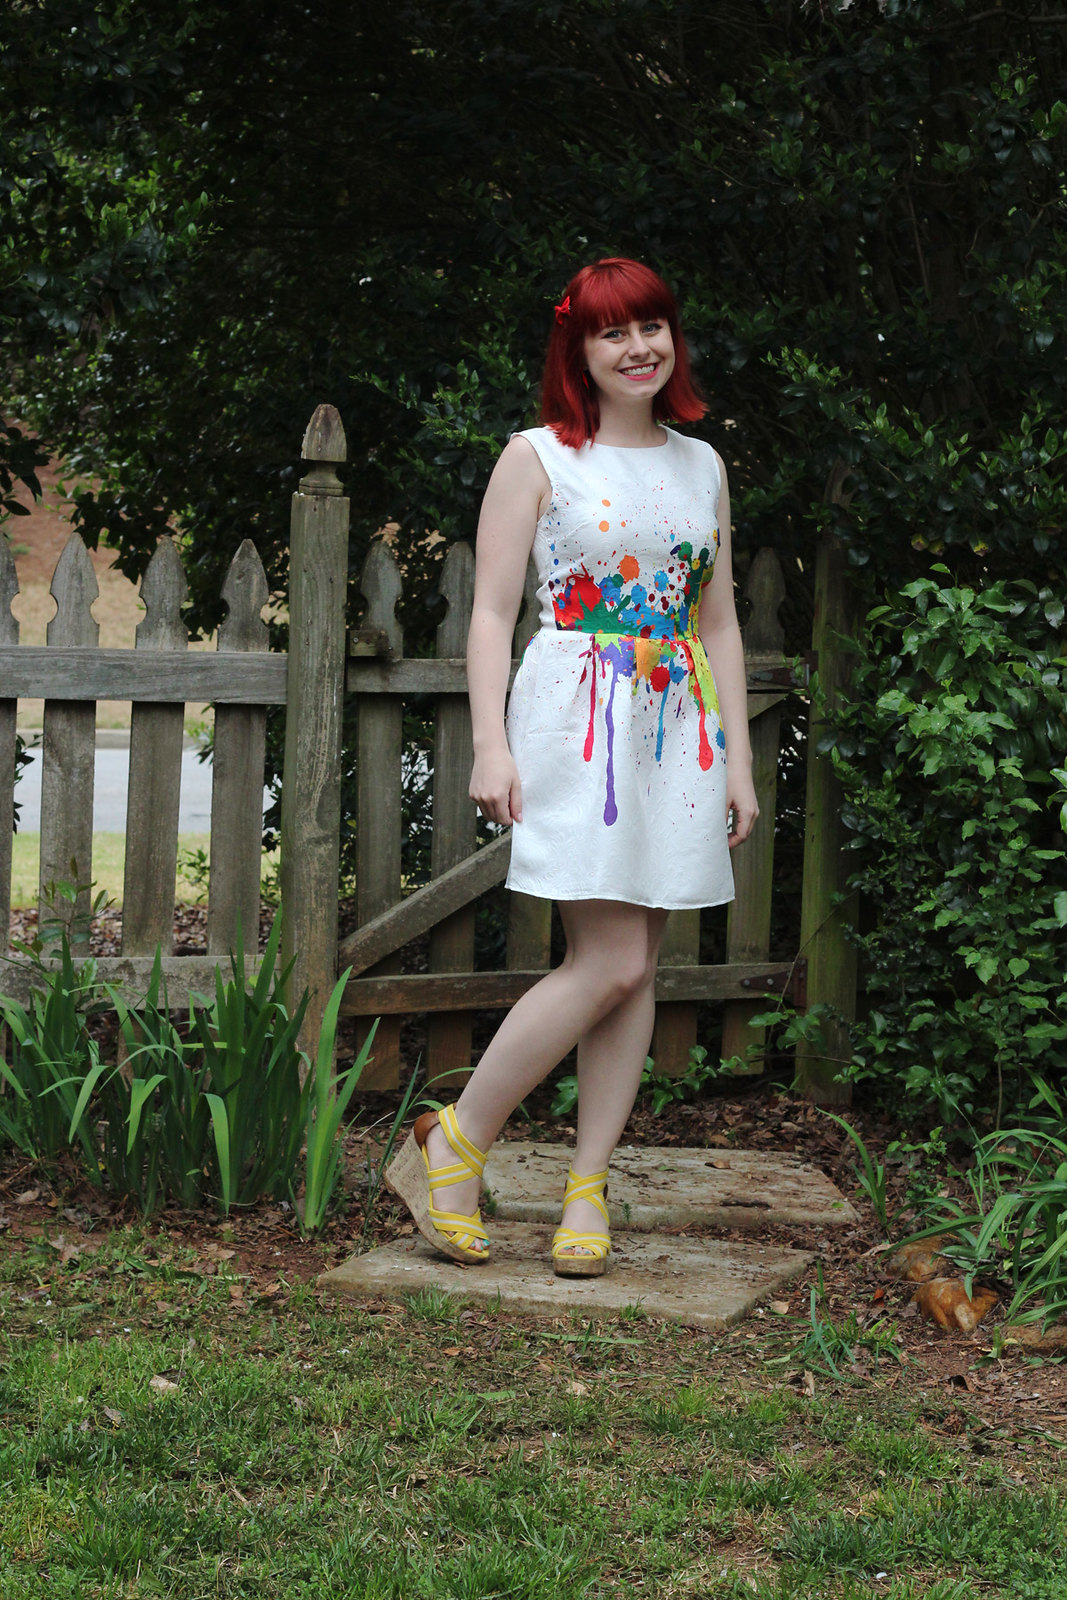 Graffiti Paint Drip Patterned White Dress with Yellow Wedges and a Red Hair Bow